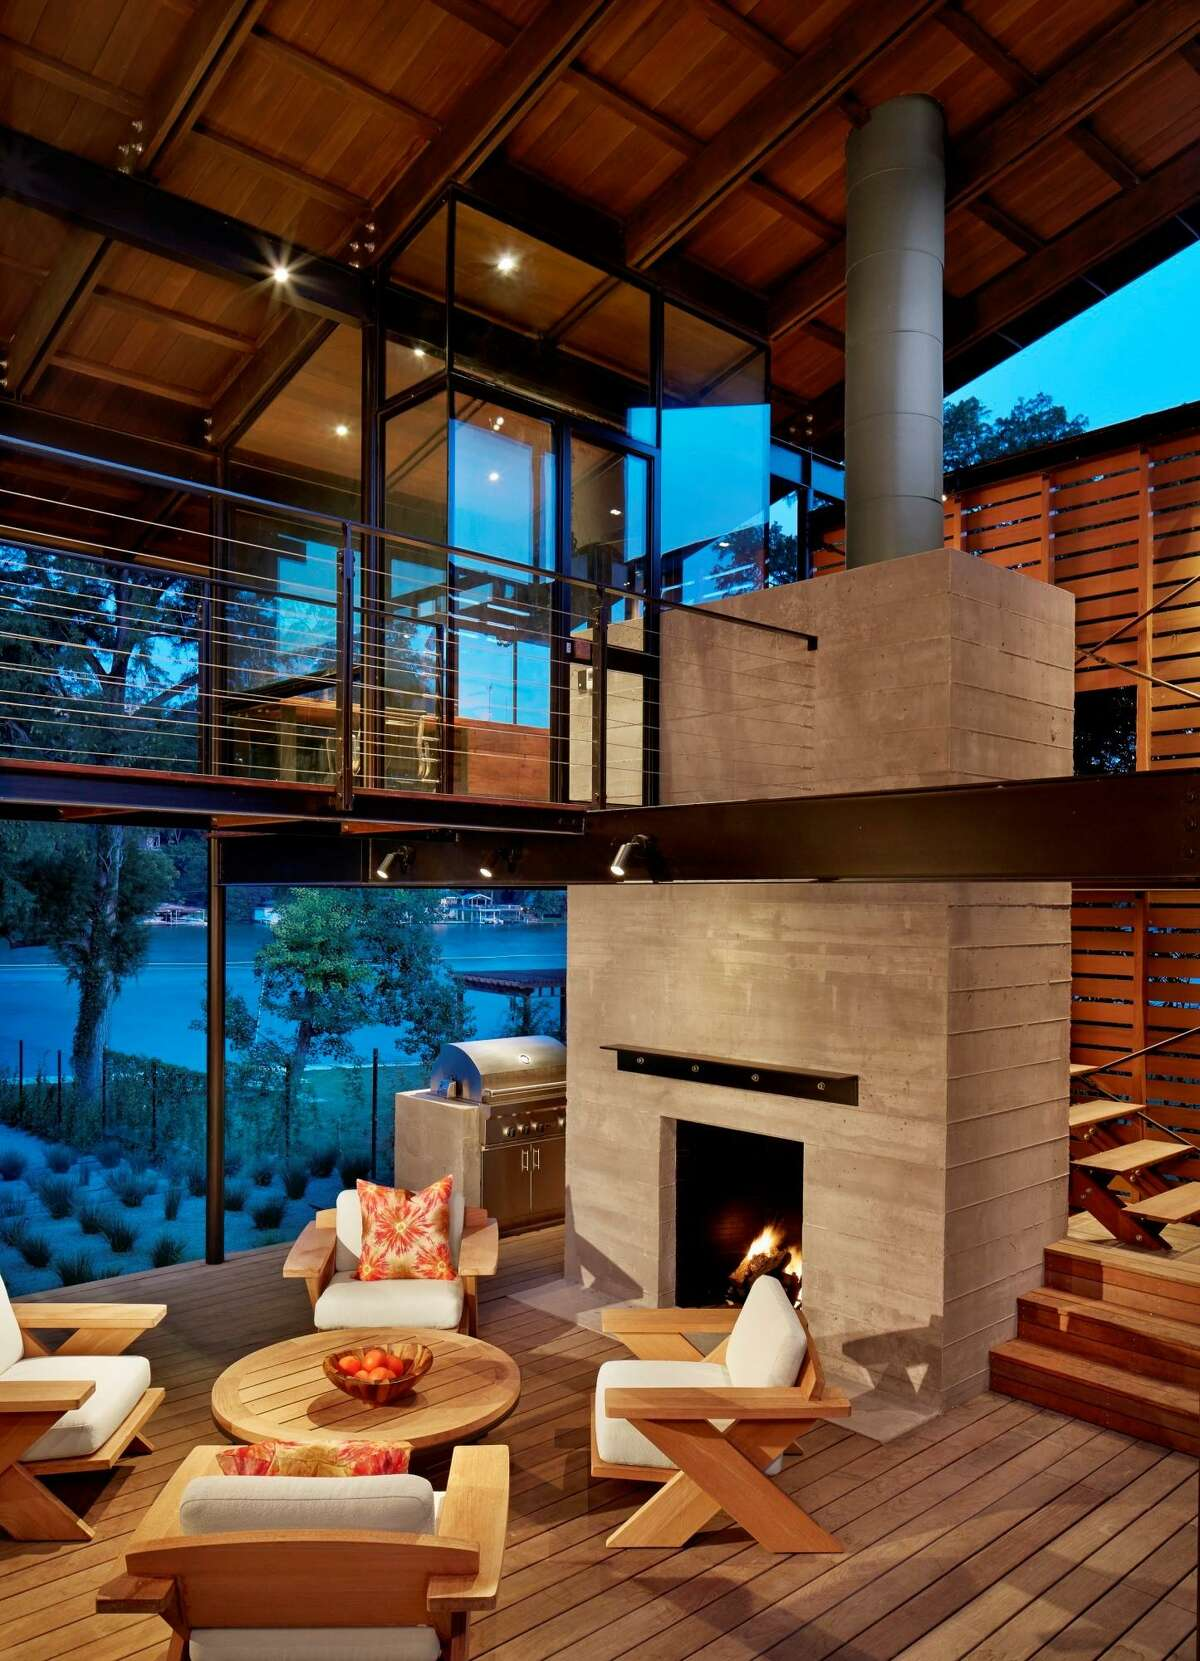 This backyard kitchen has two levels, the lower for cooking and entertaining, the upper, a glassed-in office for working with a view. The board-formed concrete fireplace is topped with a simple angled steel mantle. The lower room is open-air to catch the lake breezes and the furnishings are from Sutherland.